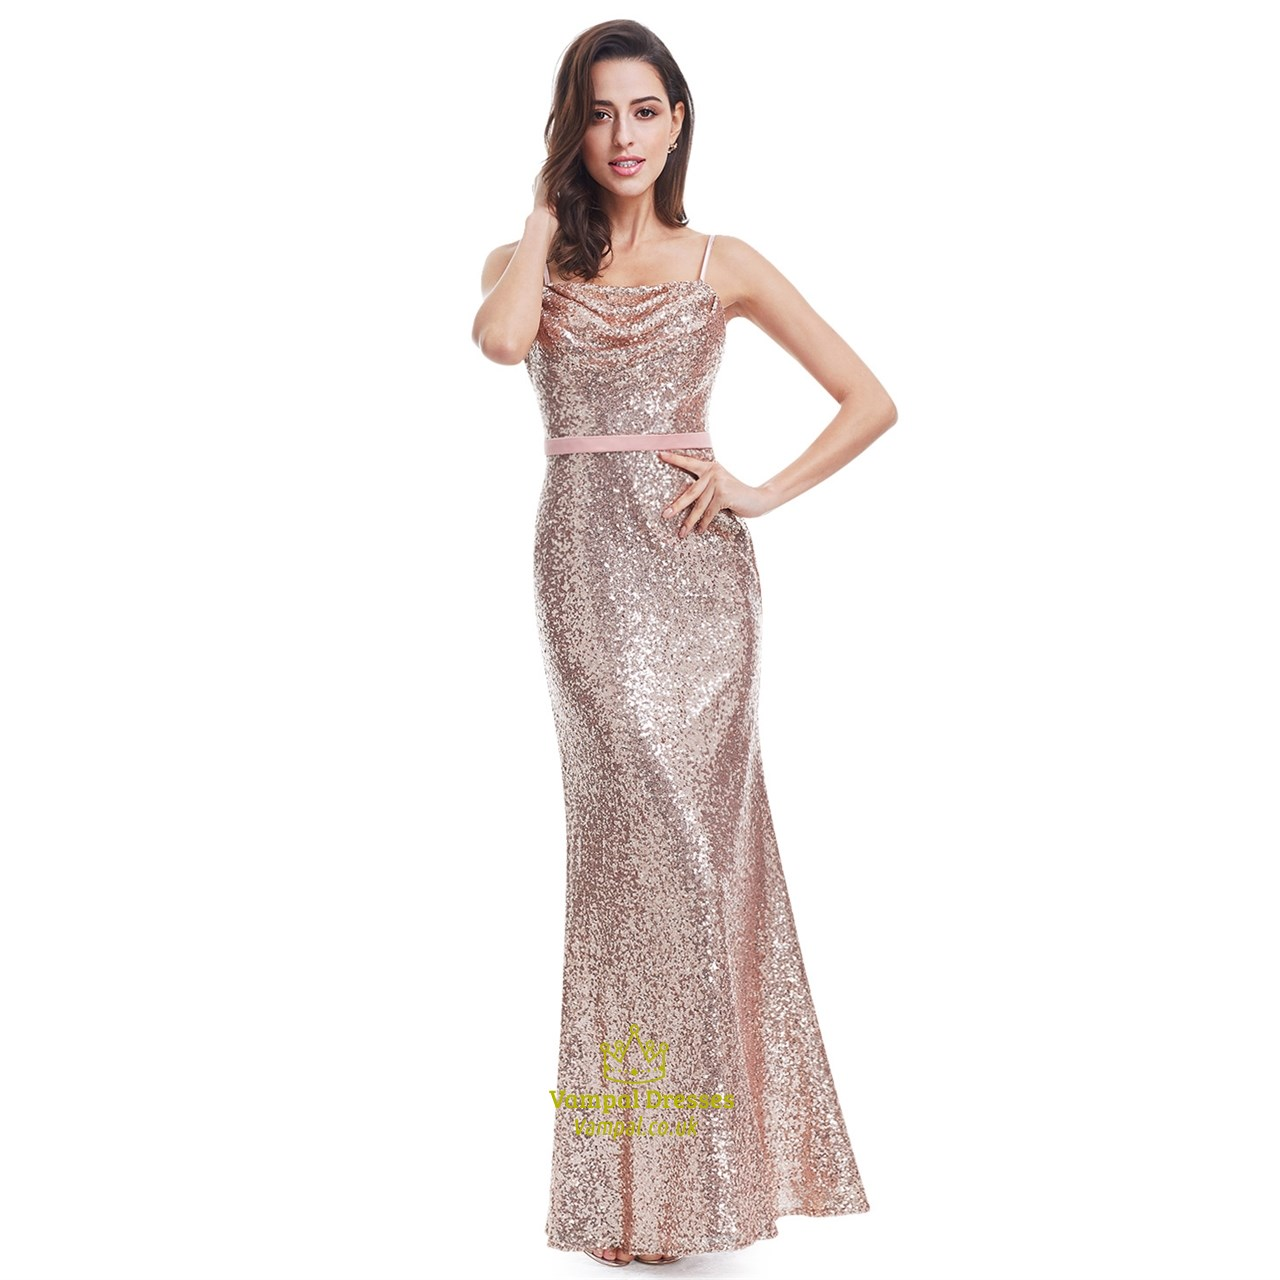 Pink Spaghetti Strap Sequin Backless Sparkly Long Formal